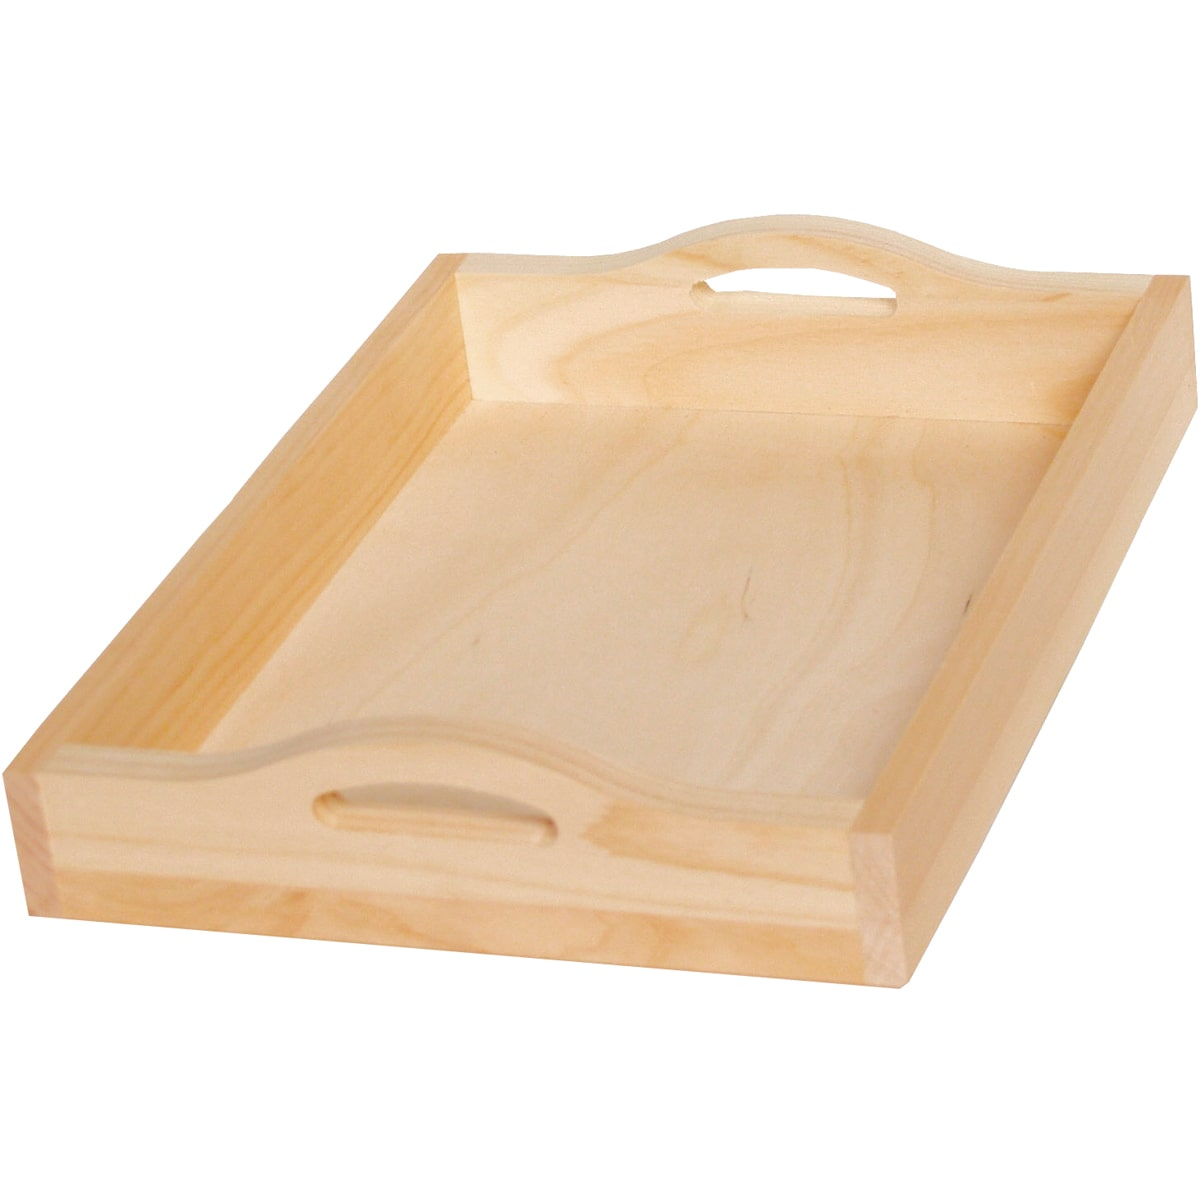 Home Decor and Craft Projects 11 x 15 Walnut Hollow Unfinished Wood Serving Tray for Weddings